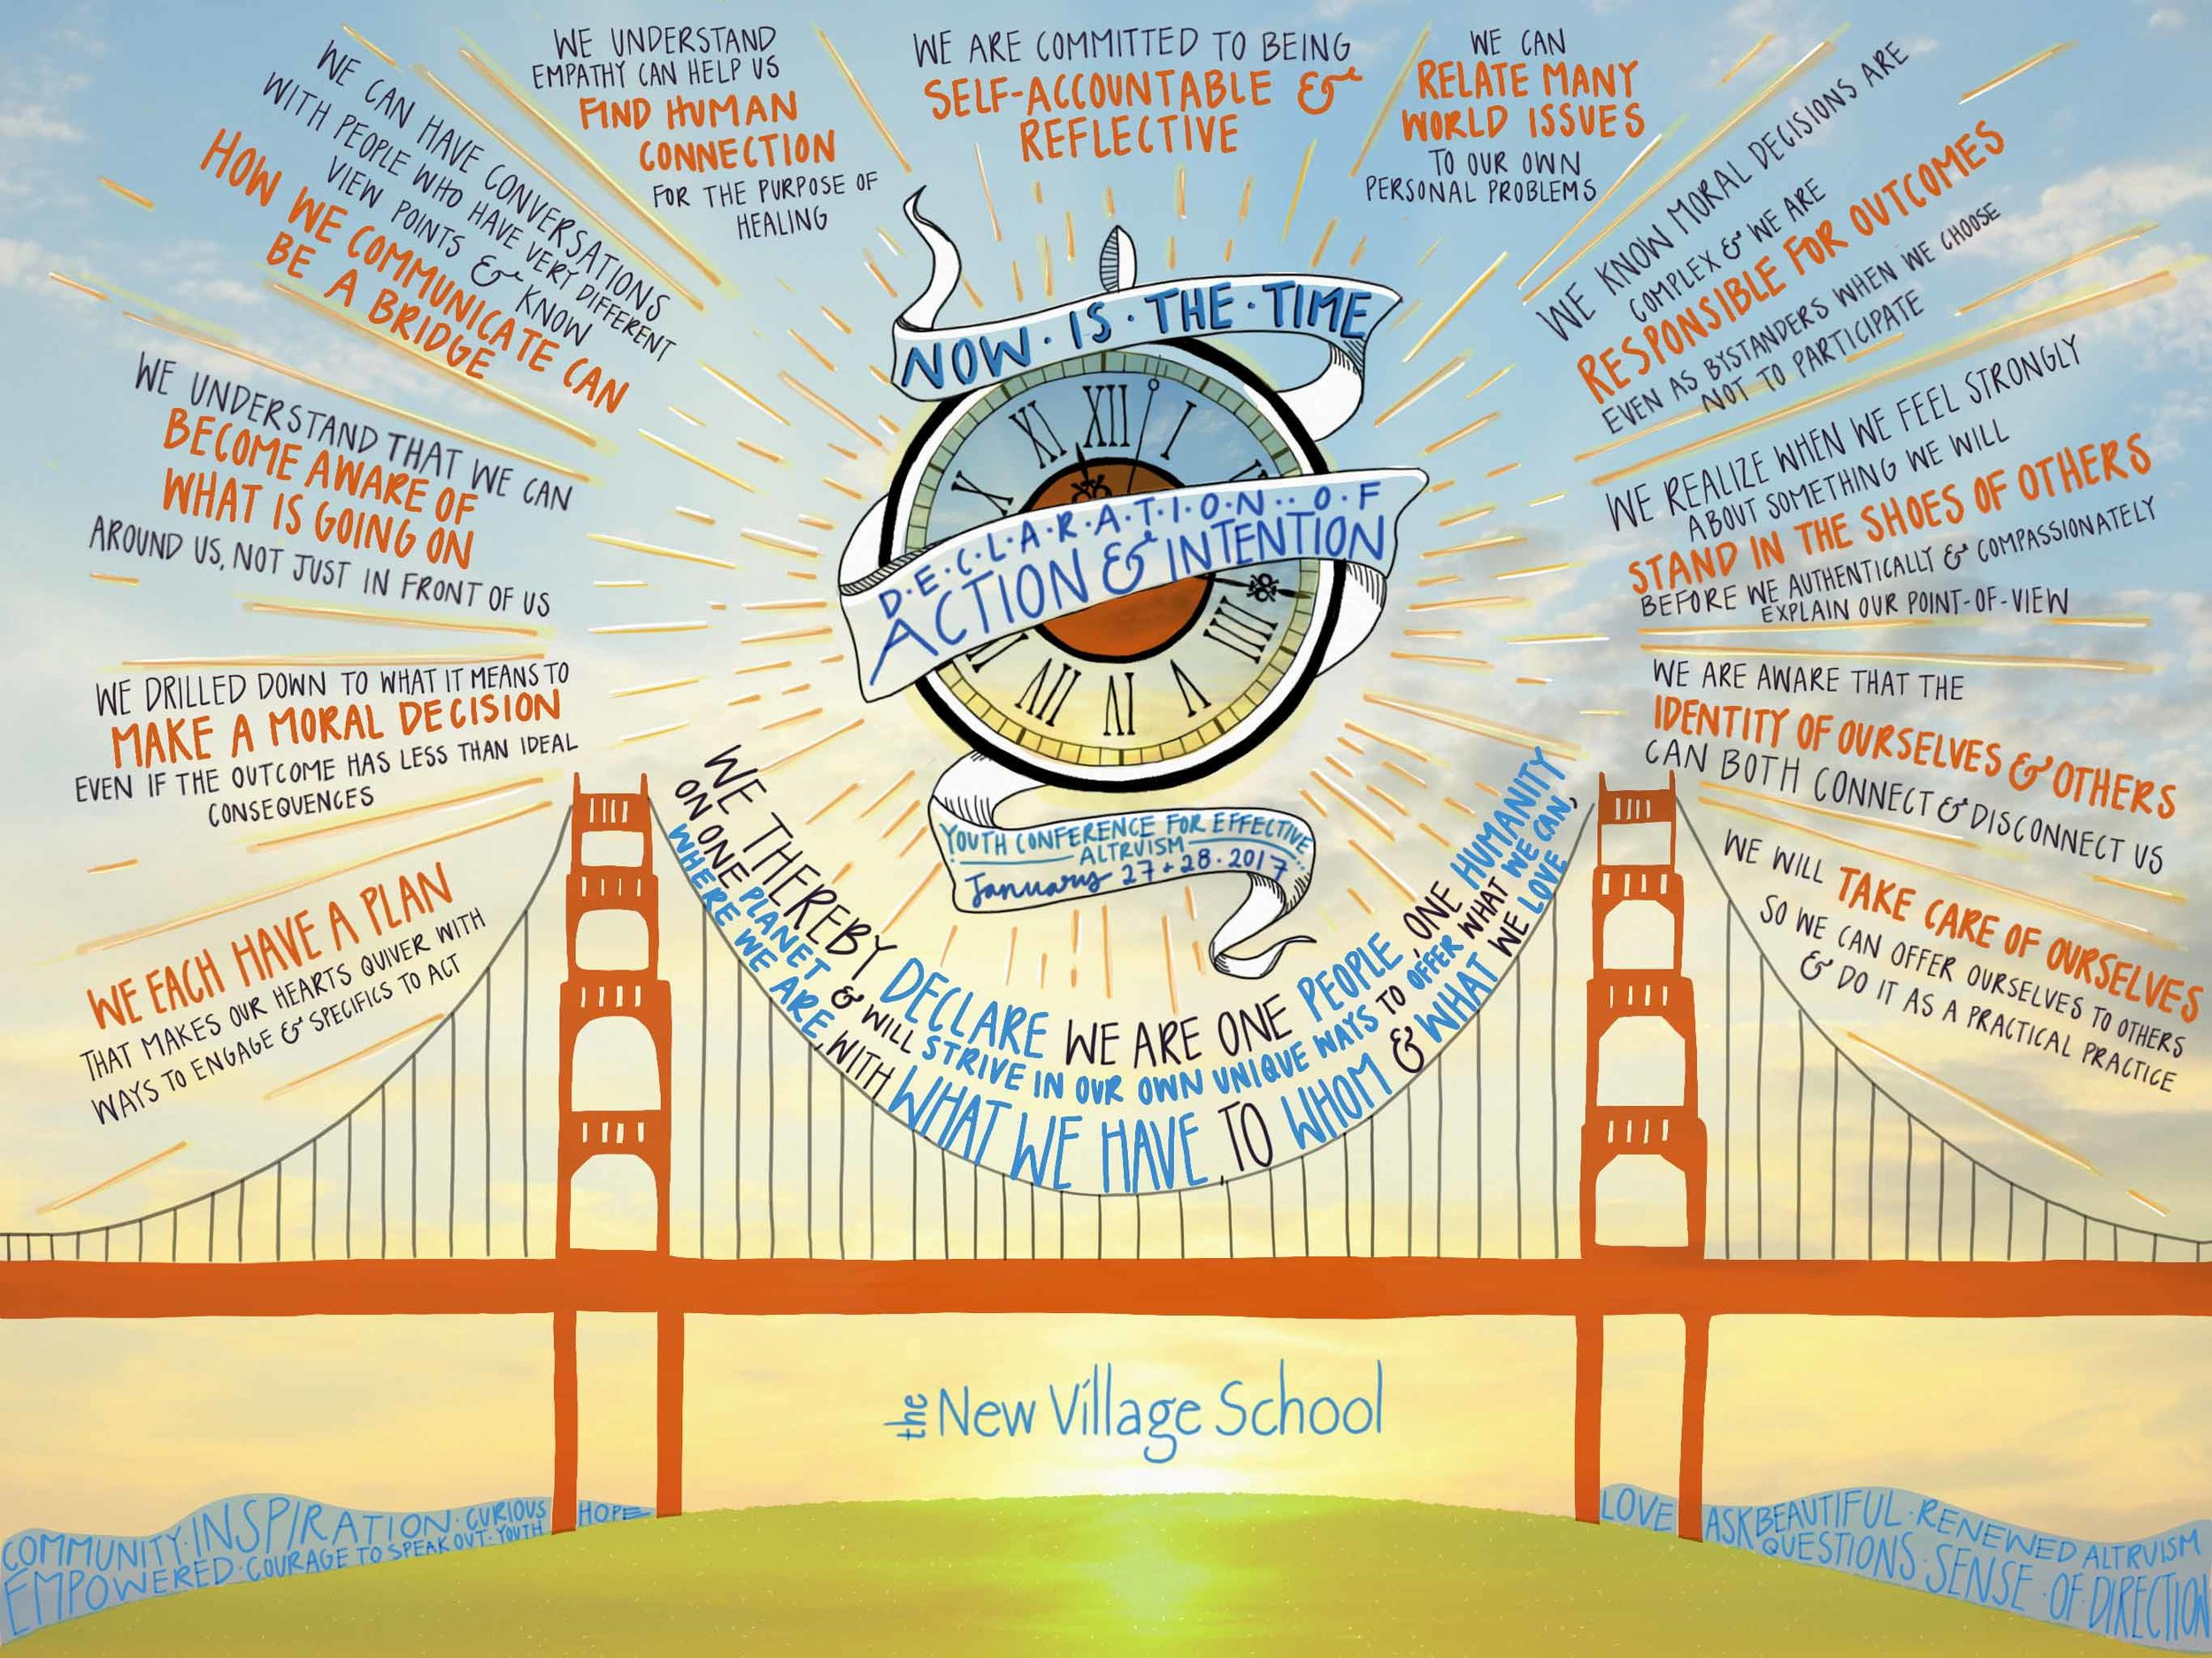 In their own words: The declaration of intention and action was created with the 32 activist students at Now Is The Time San Francisco.